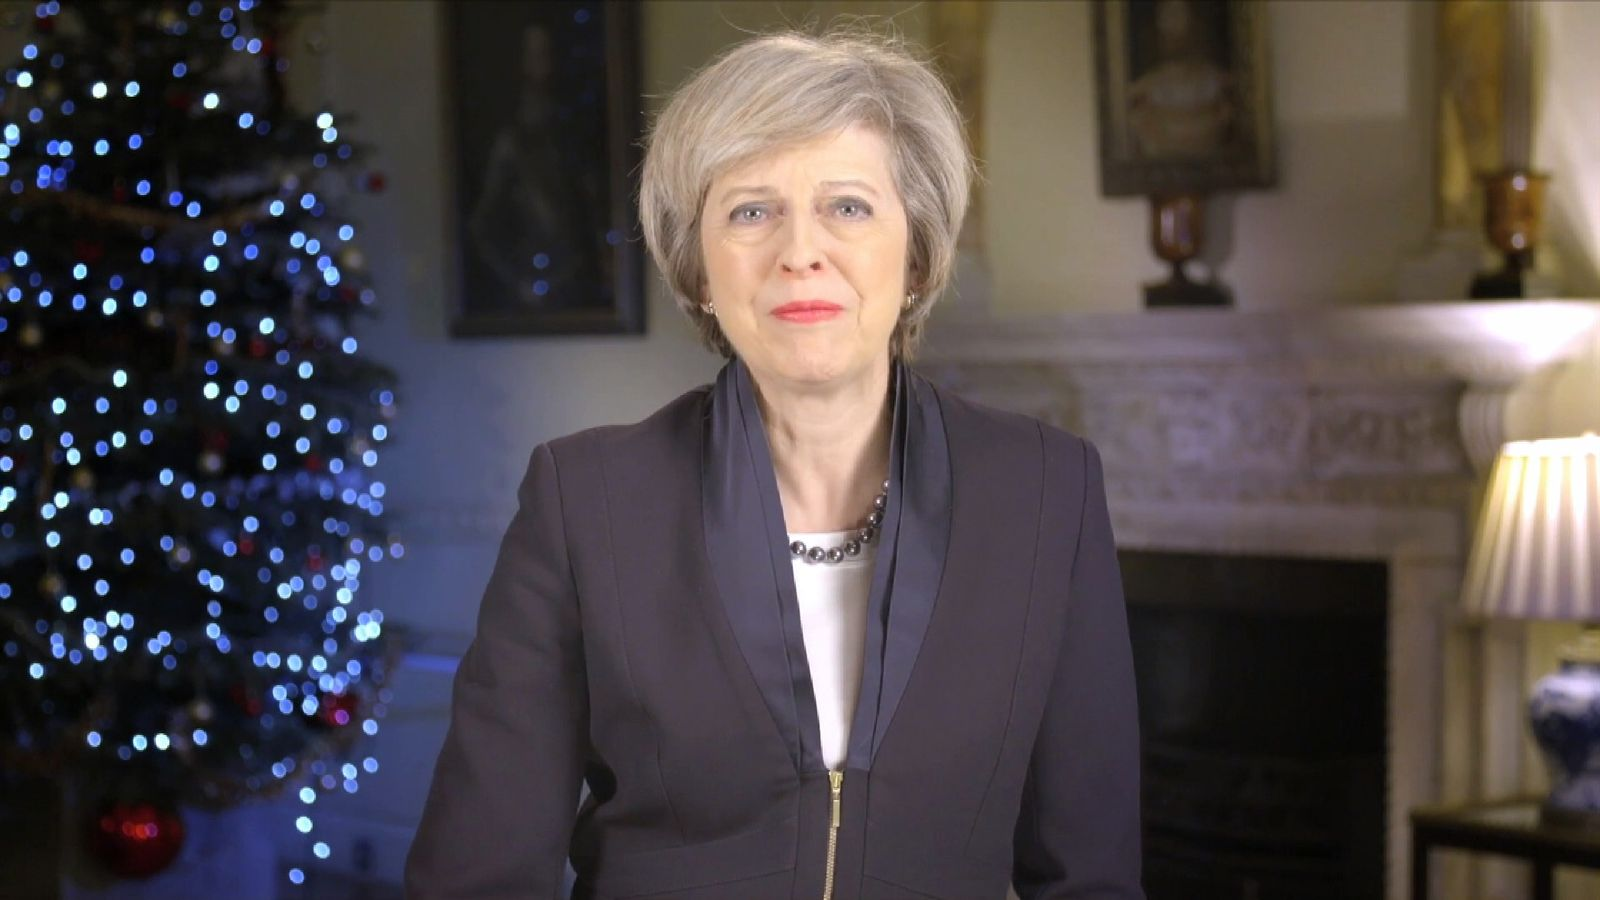 may quotes jo cox in new year message